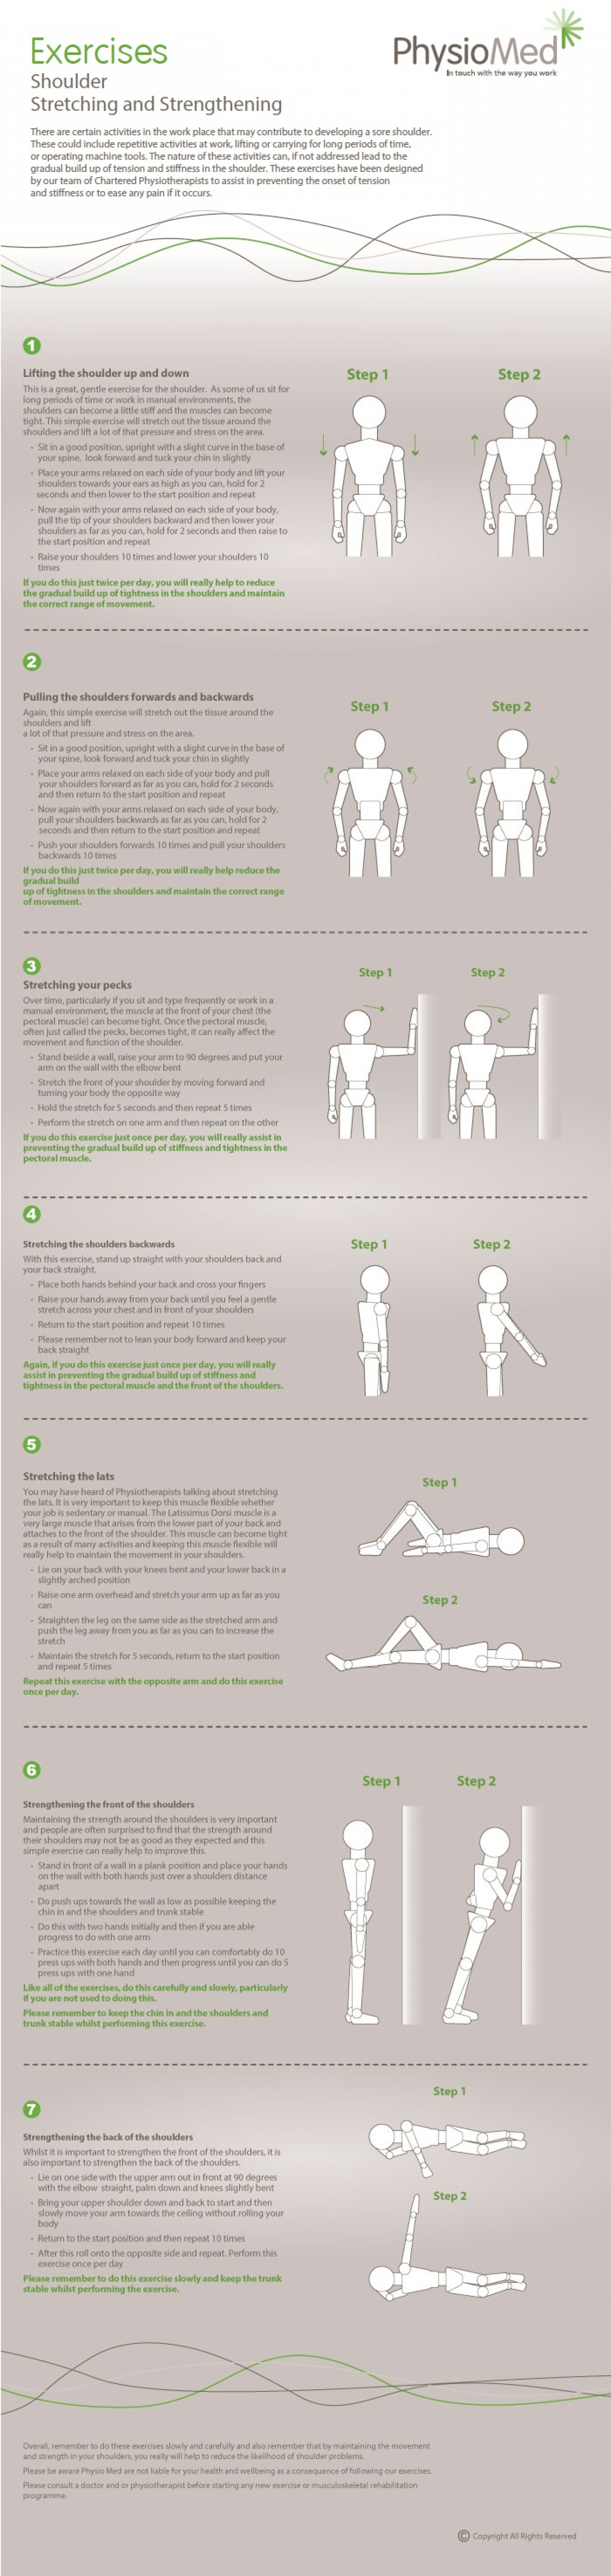 Shoulder Stretching and Strengthening Exercises: Occupational Physiotherapy - Physio Med Infographic